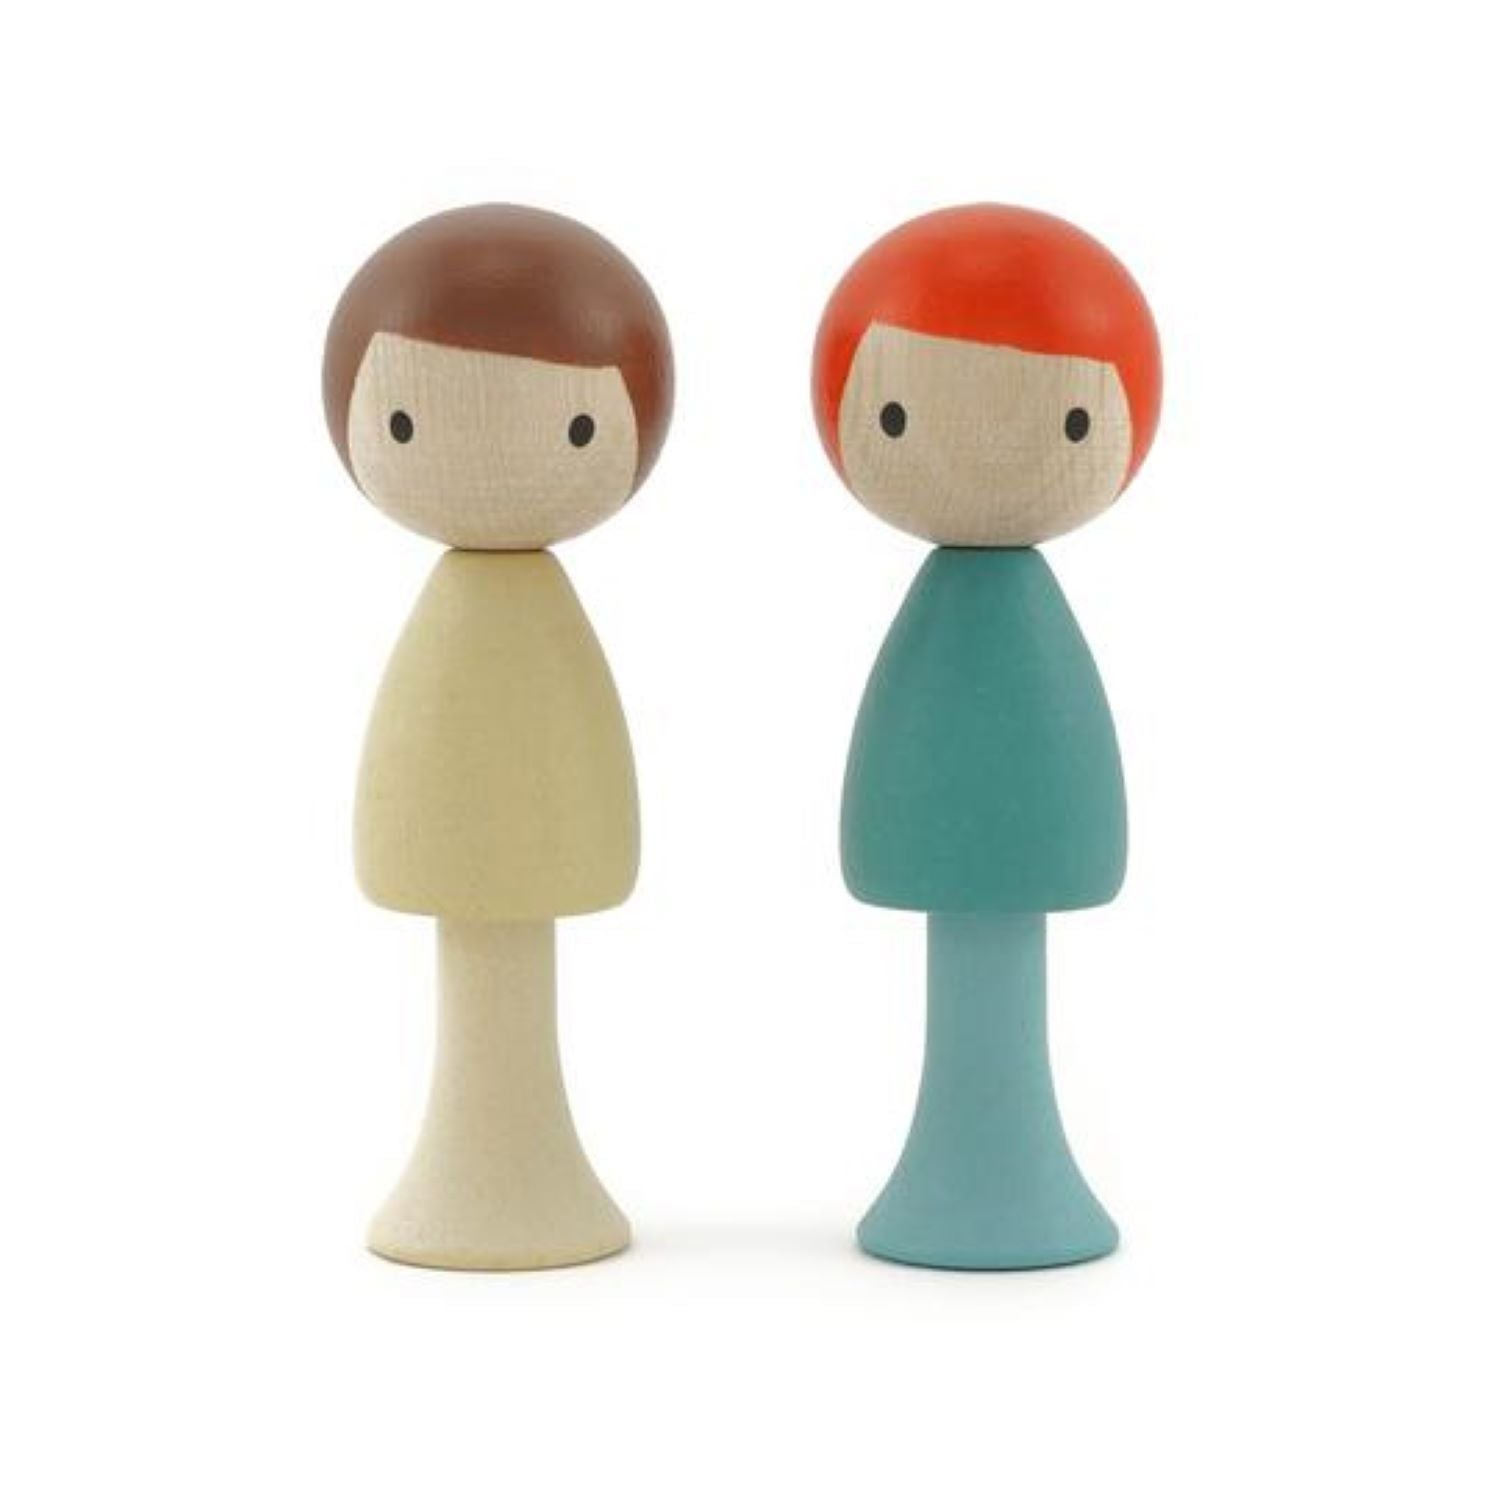 Clicques - Max and Emil Wooden Figurines